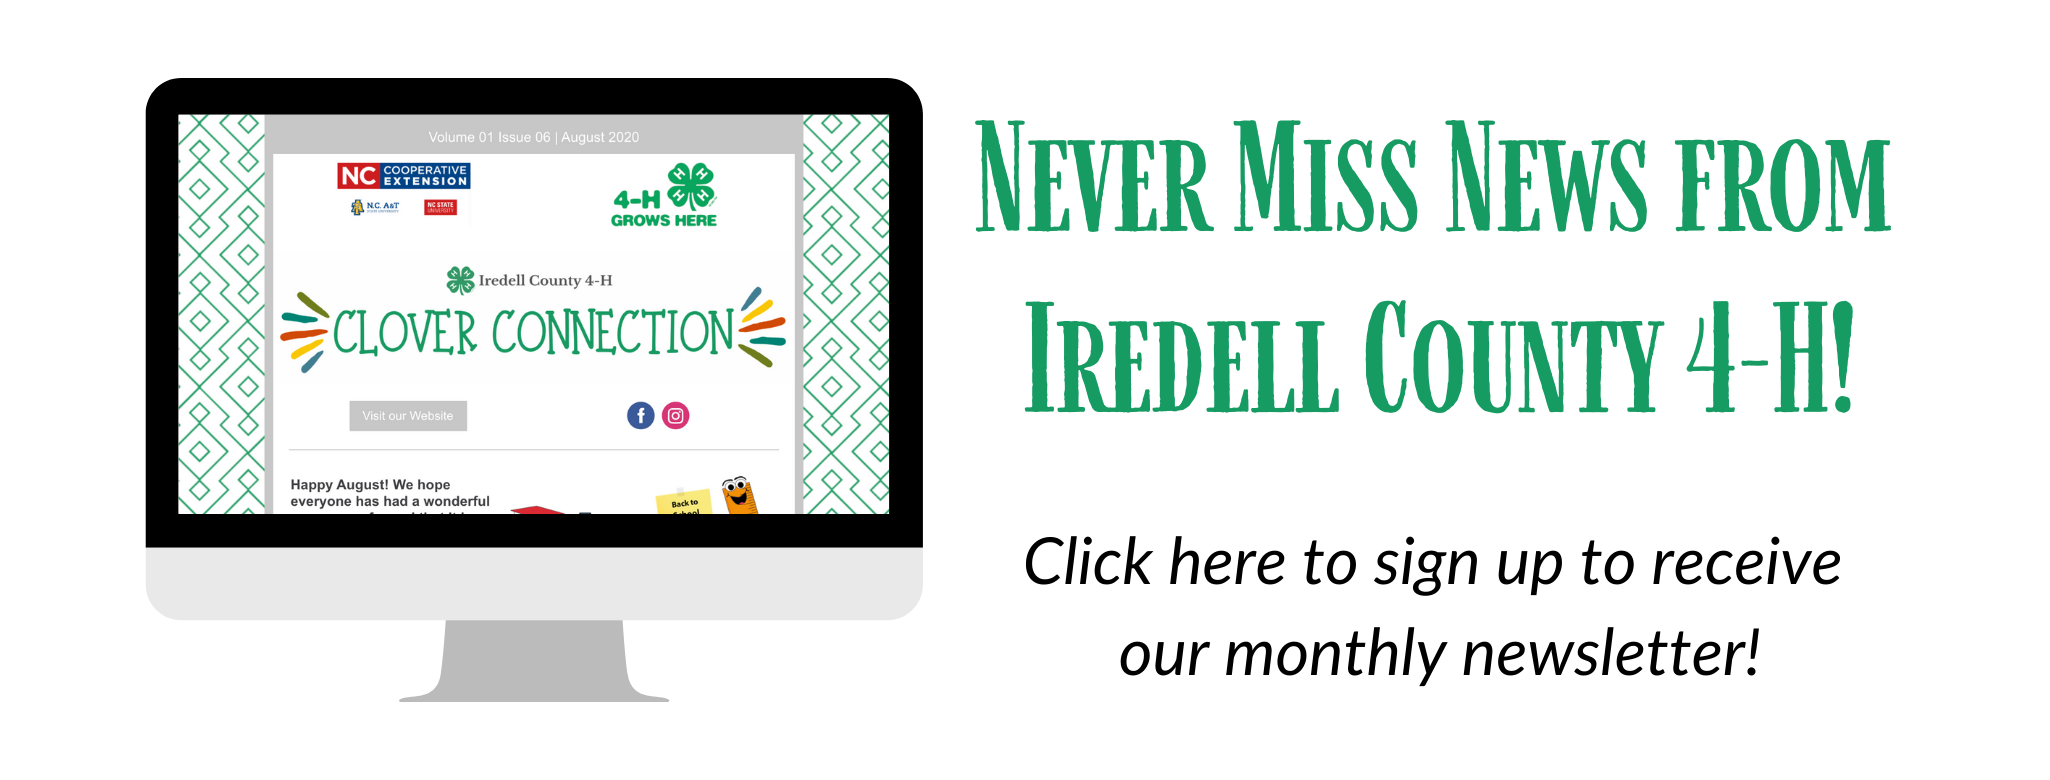 News from Iredell County 4-H banner